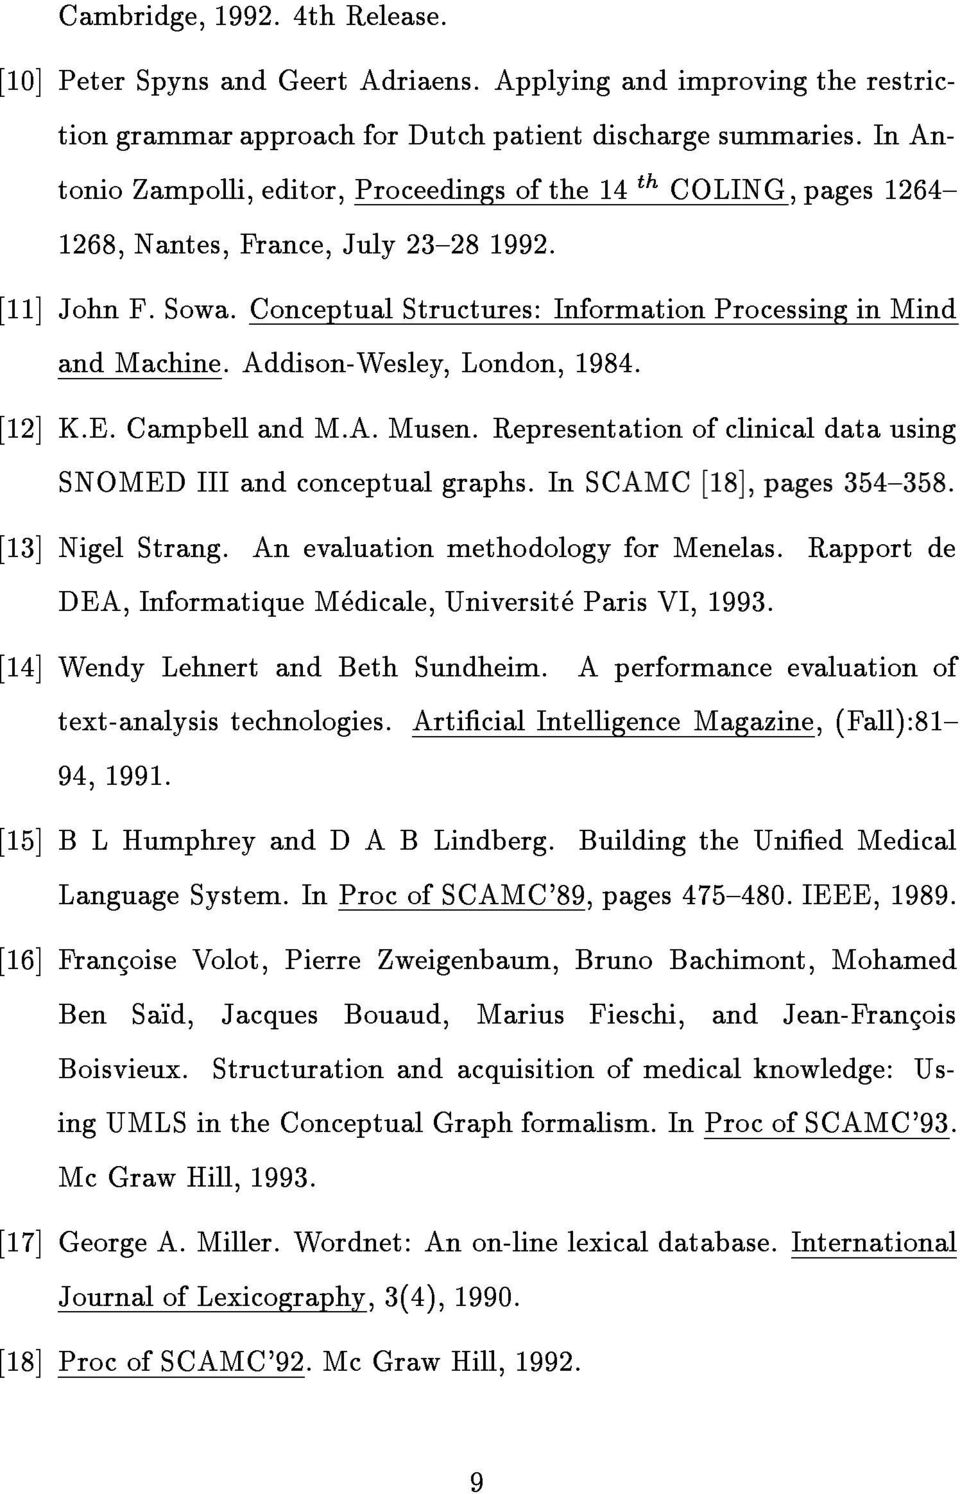 Addison-Wesley, London, 1984. [12] K.E. Campbell and M.A. Musen. Representation of clinical data using SNOMED III and conceptual graphs. In SCAMC [18], pages 354{358. [13] Nigel Strang.